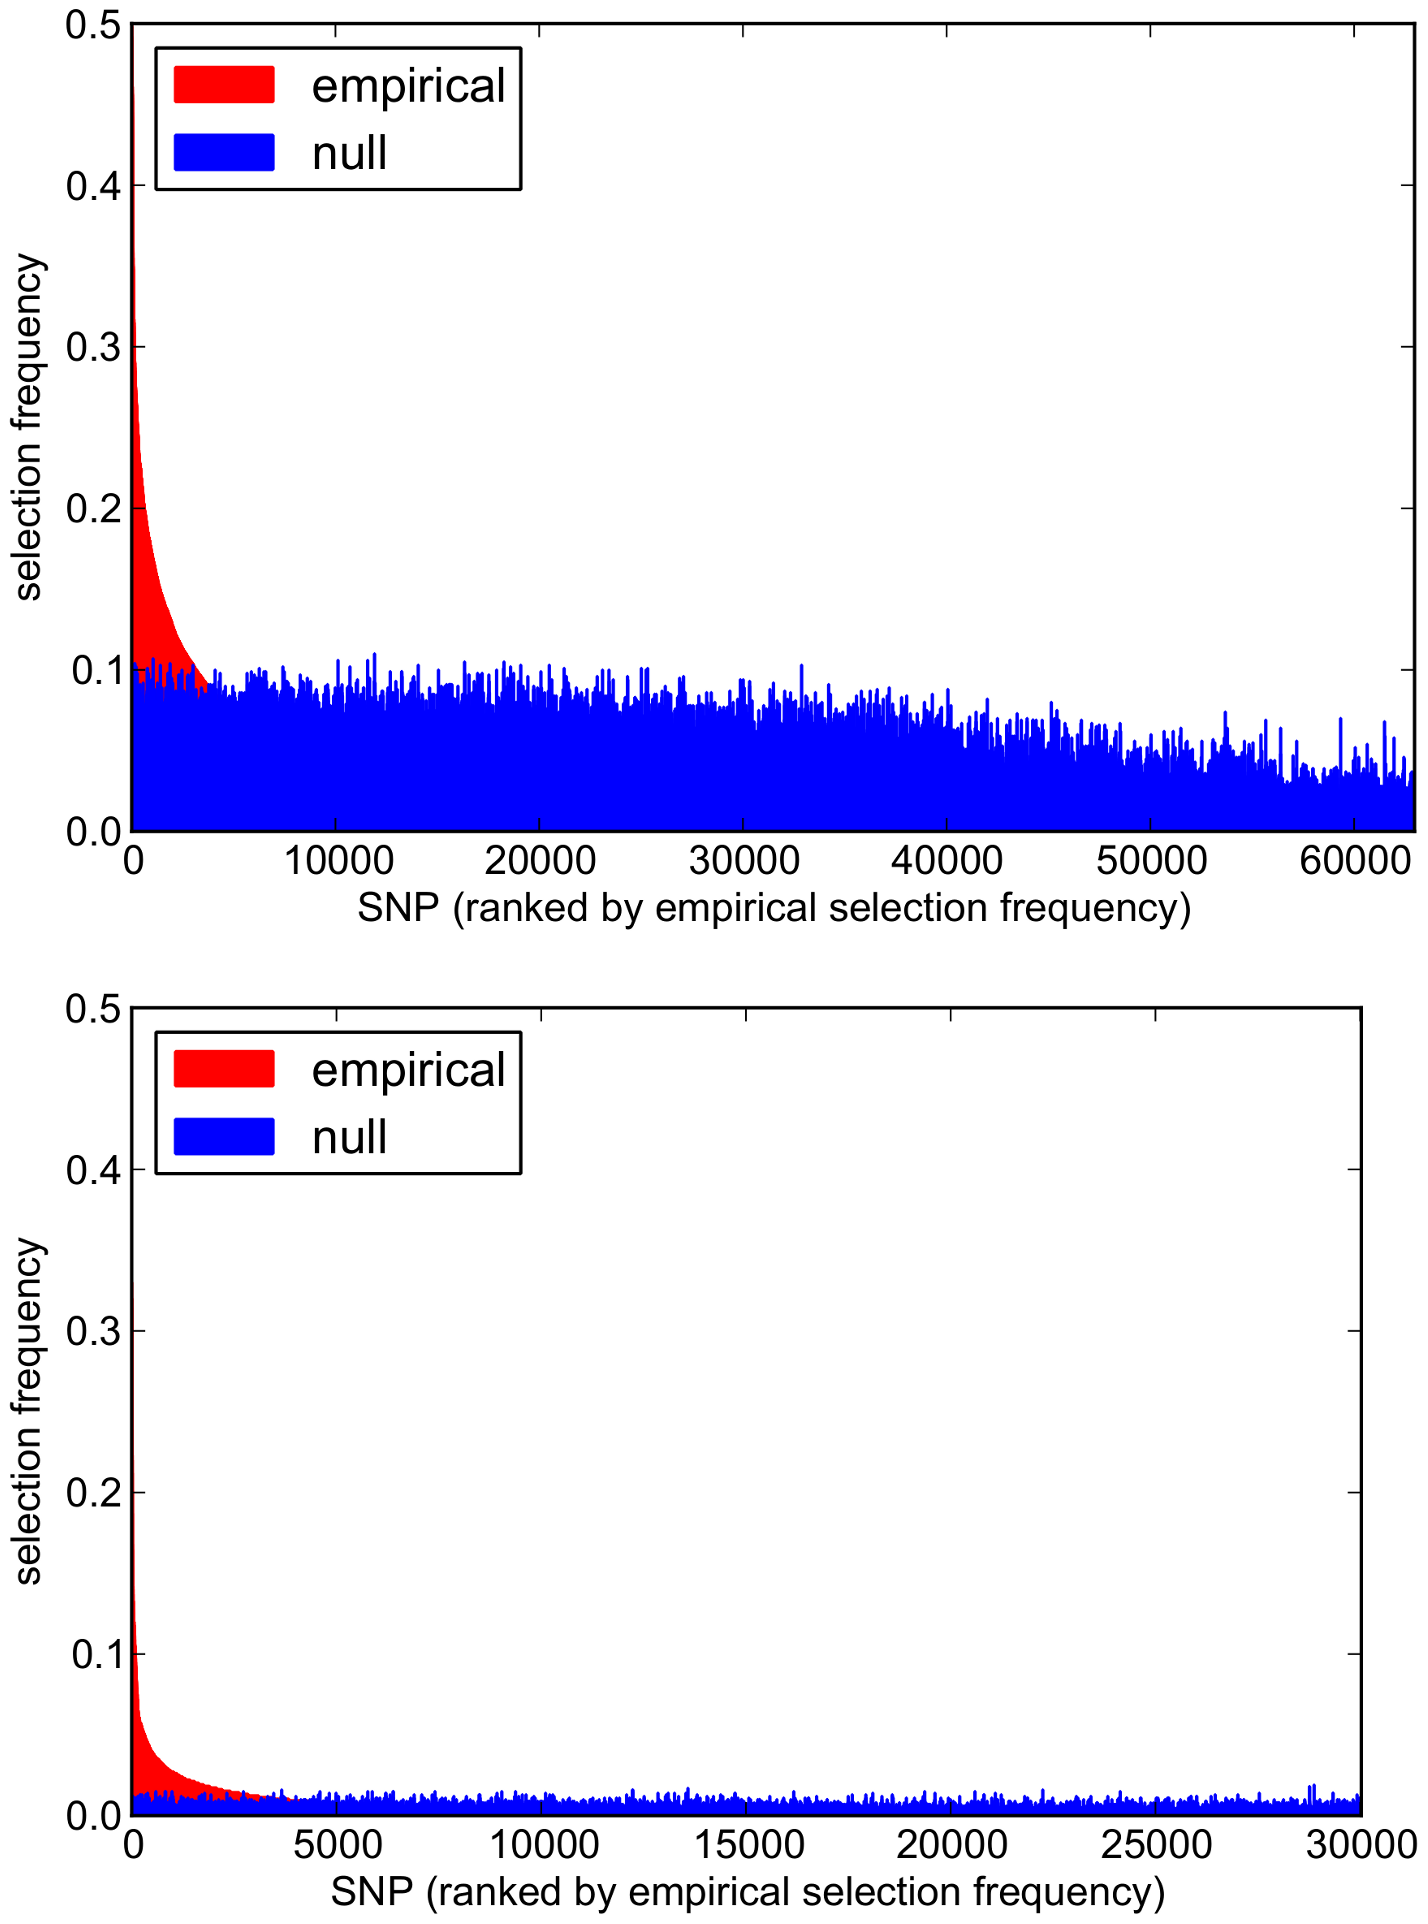 Empirical and null SNP selection frequency distributions with the SP2 dataset.